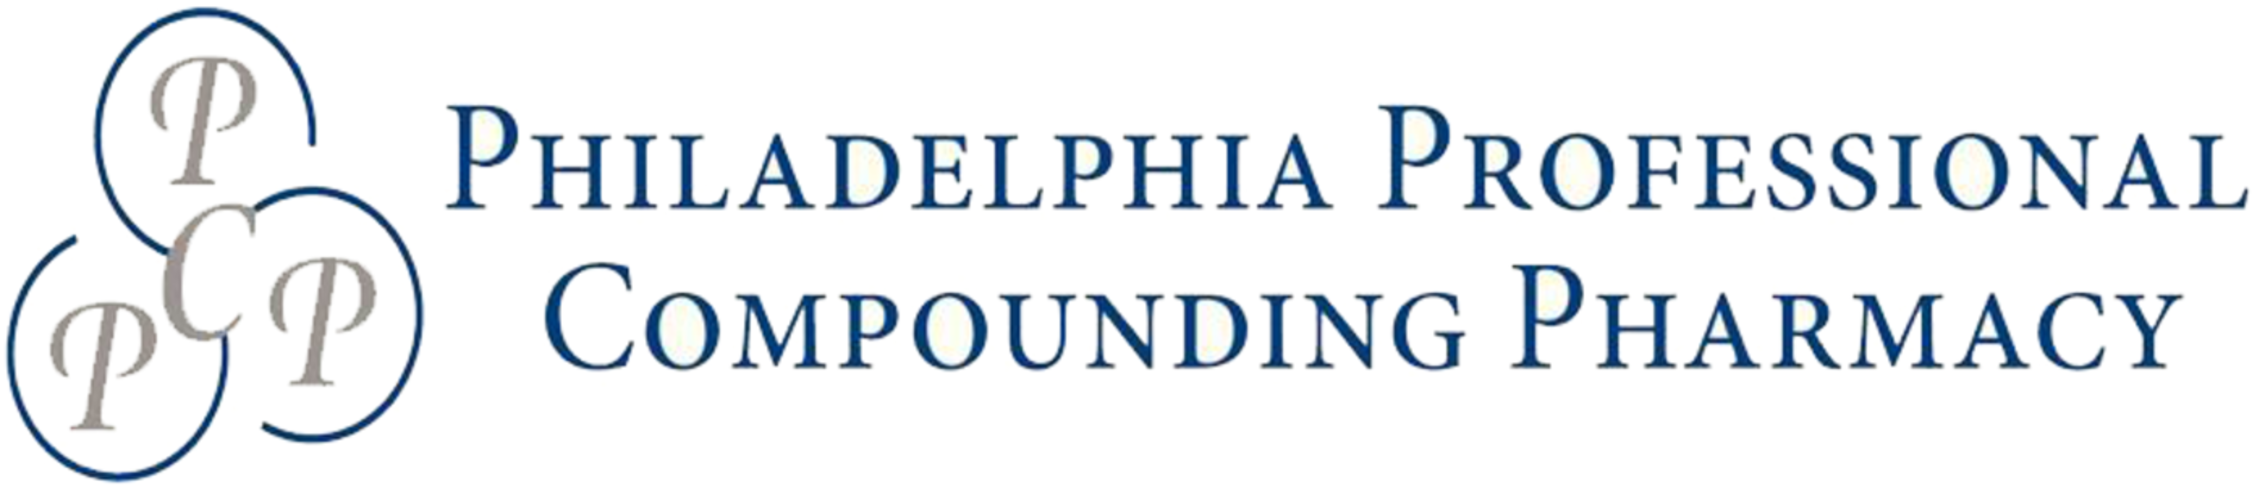 Philadelphia Professional Compounding Pharmacy